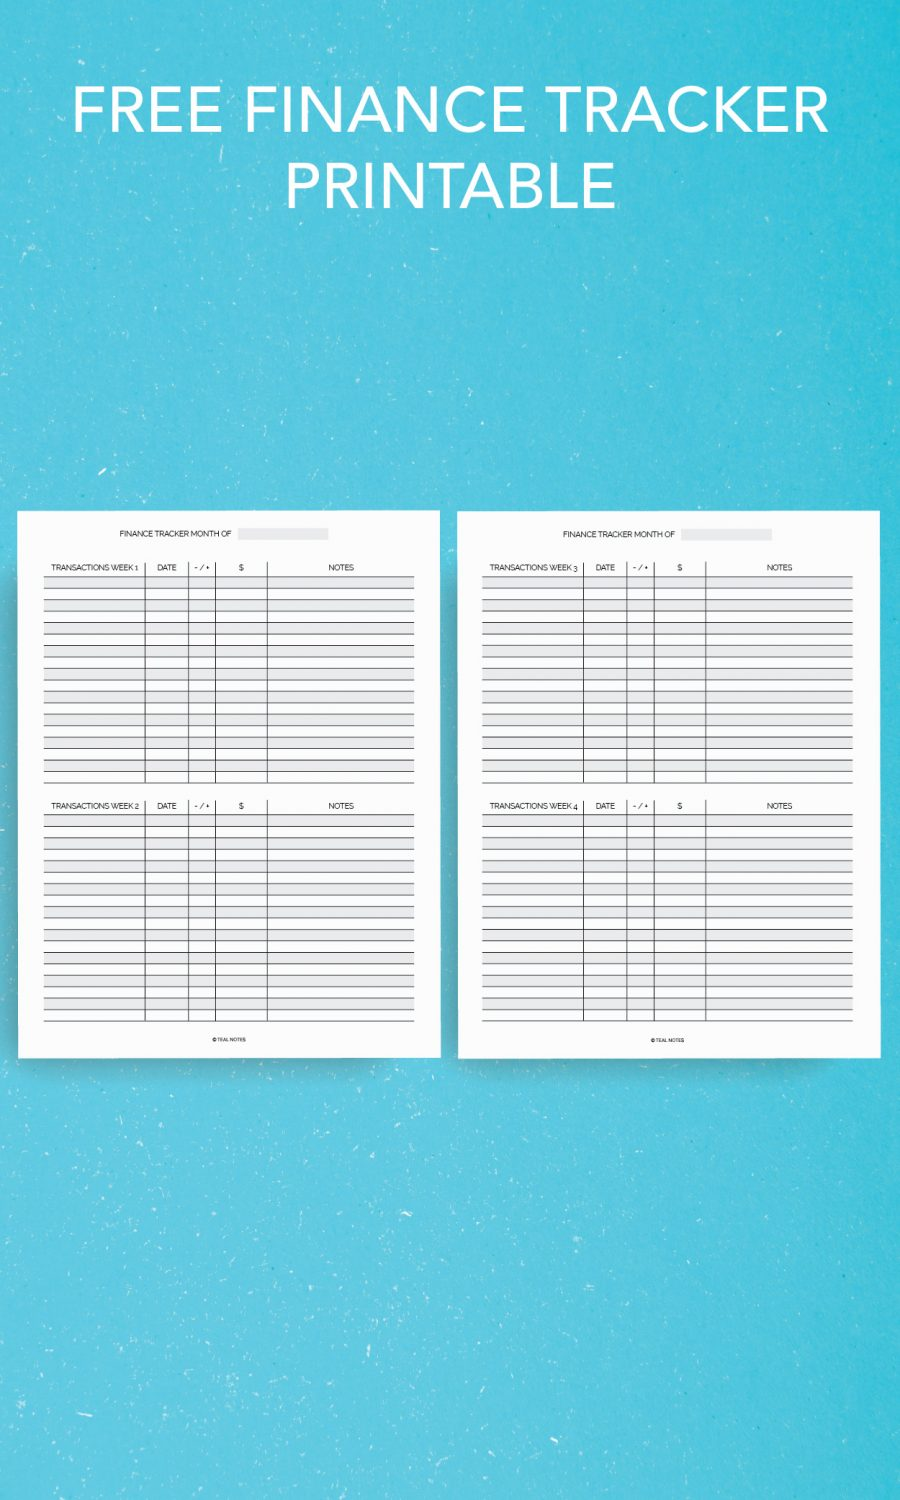 Free finance tracker printable